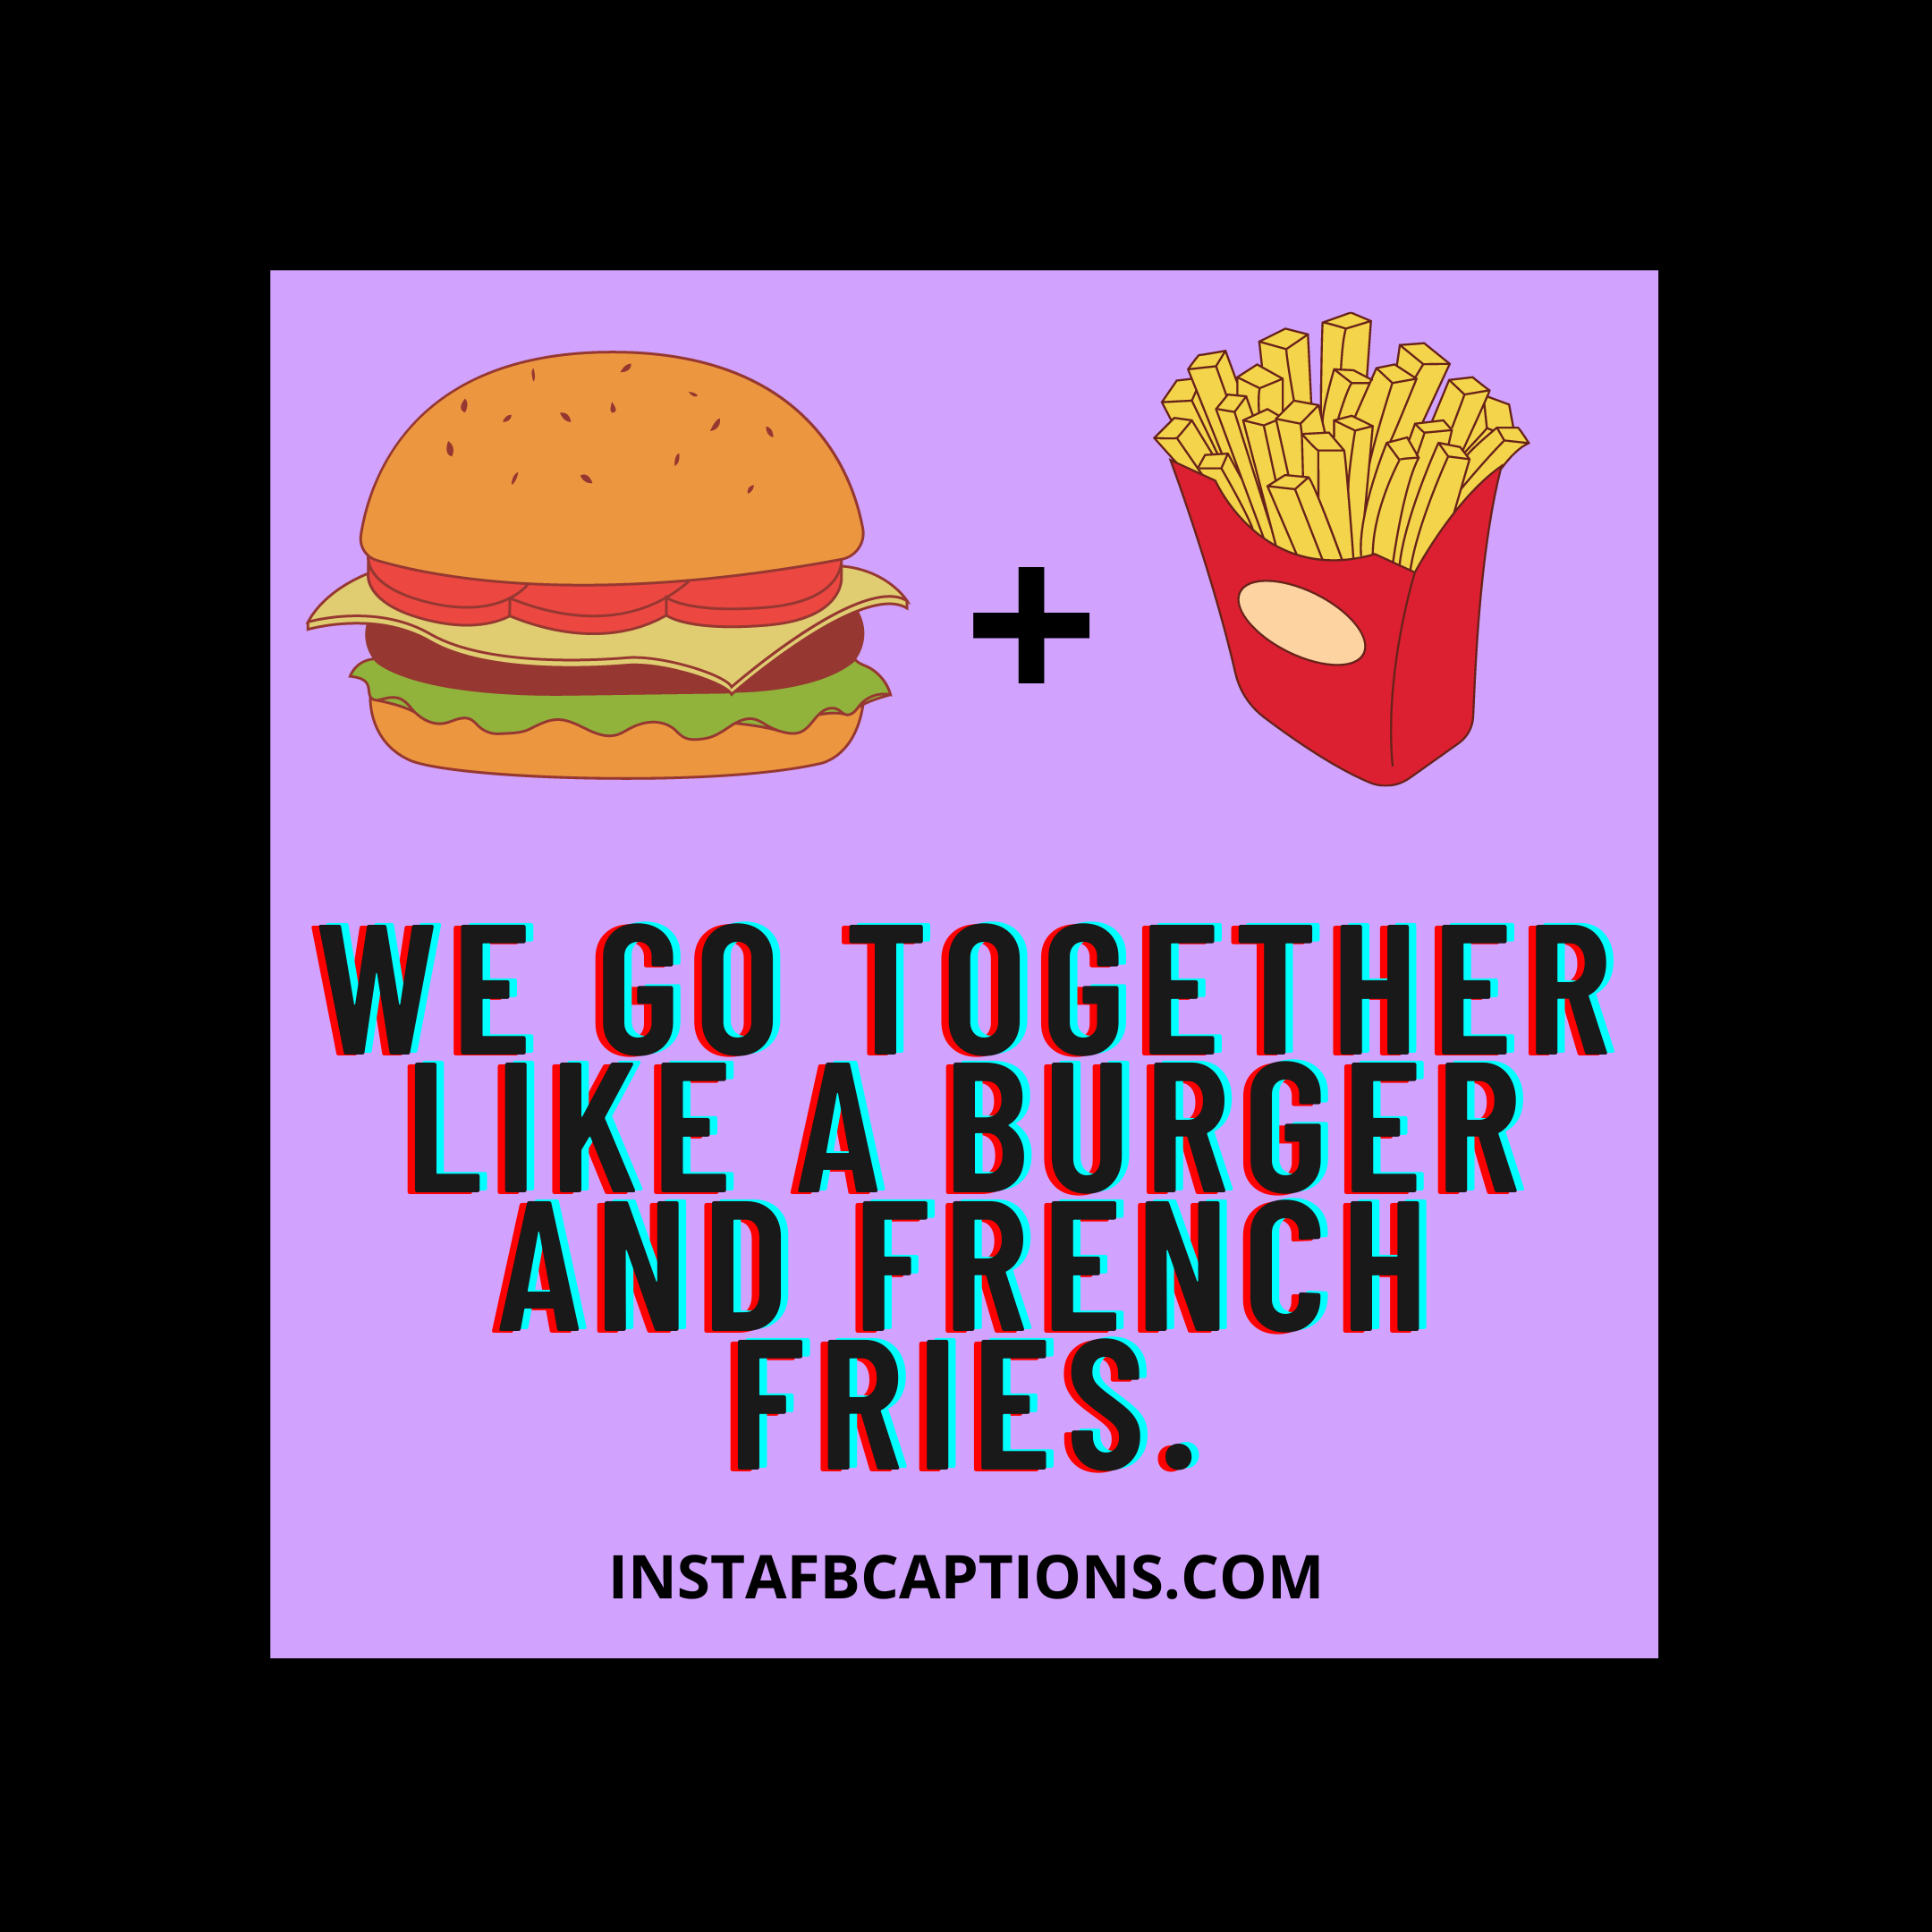 We Go Together Like A Burger And French Fries  - We go together like a burger and French fries - 200+ COMMENTS For COUPLE PICS on Instagram  2021